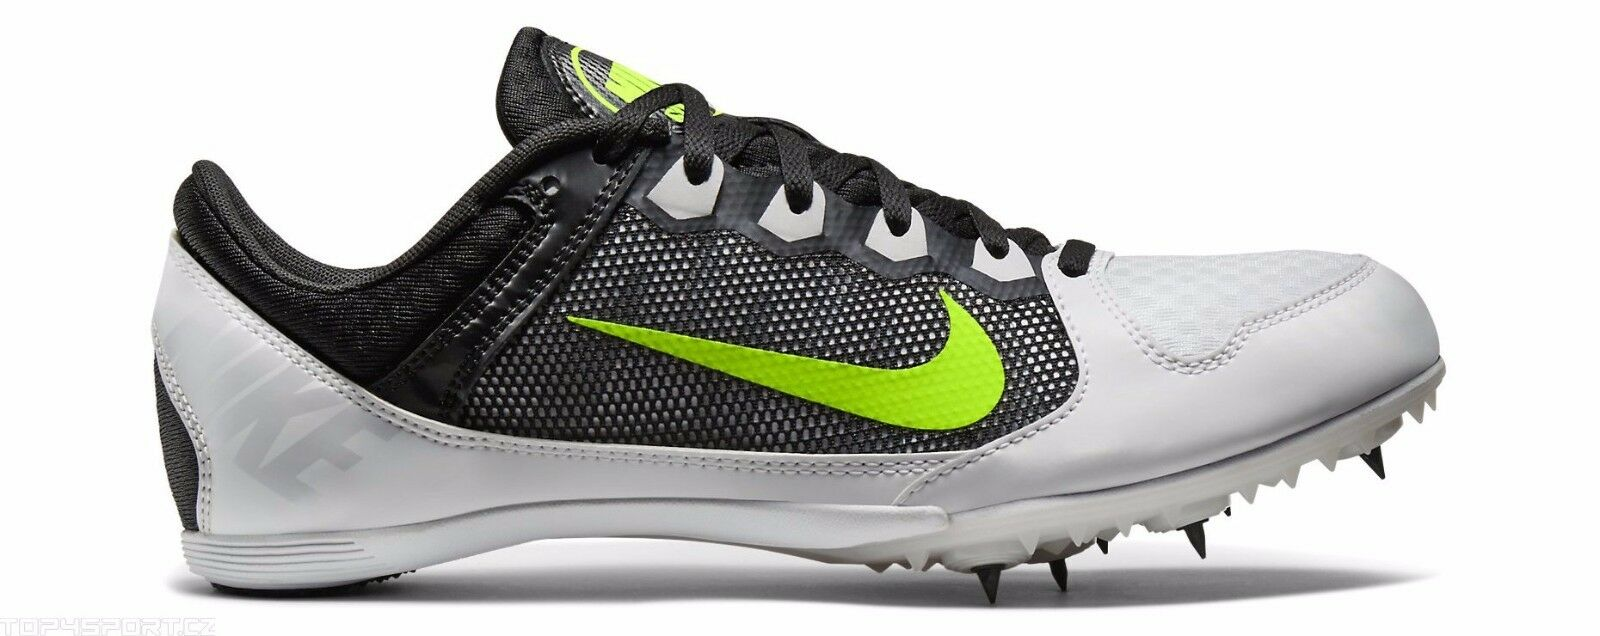 Nike Zoom Rival MD 7 Men's Running Shoes Style 616312-103 MSRP Price reduction Brand discount